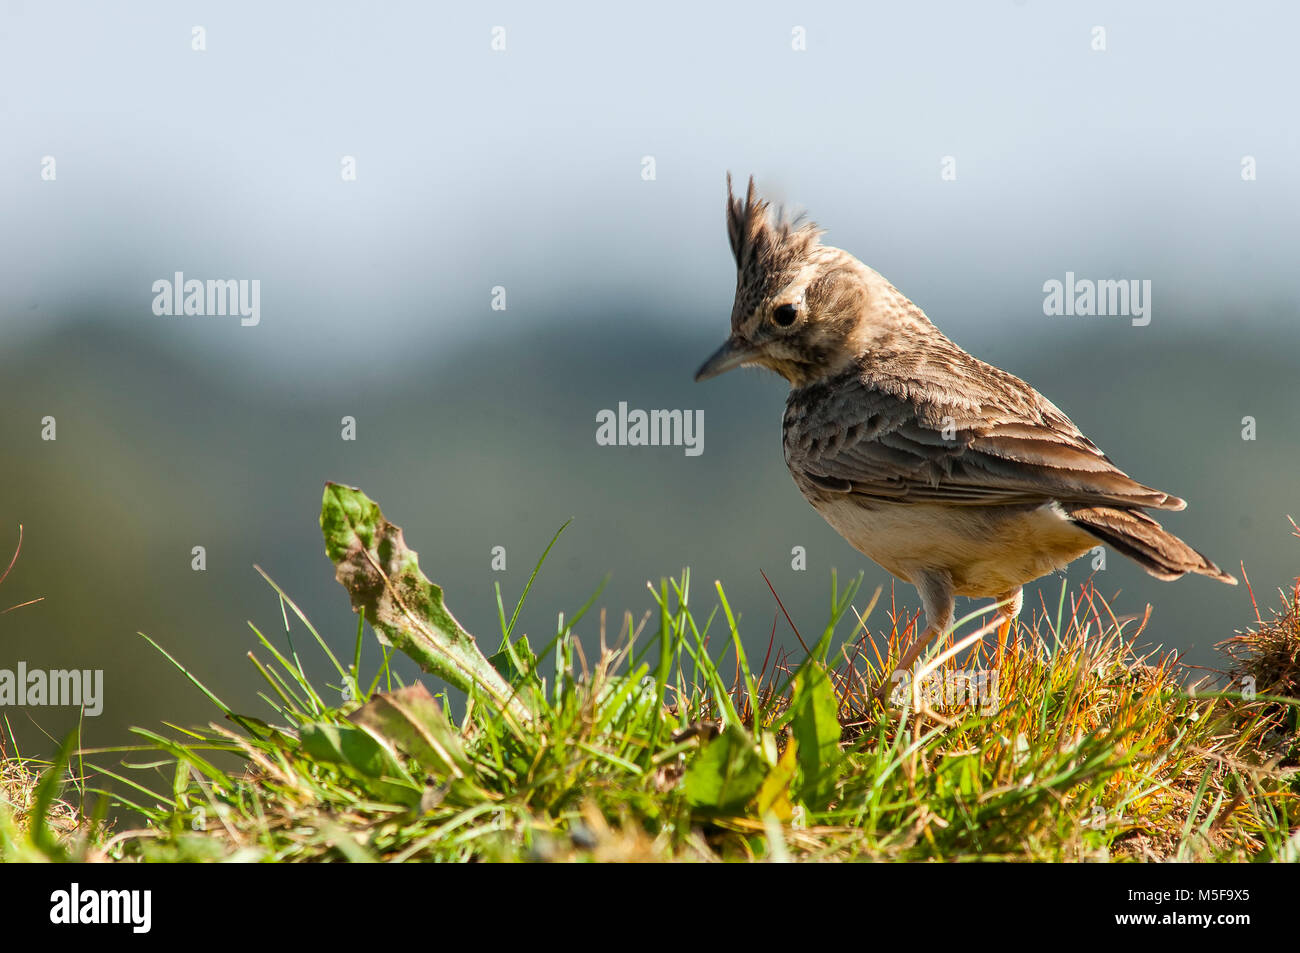 Crested Lark (Galerida cristata) open land, Spain sparse vegetation - Stock Image